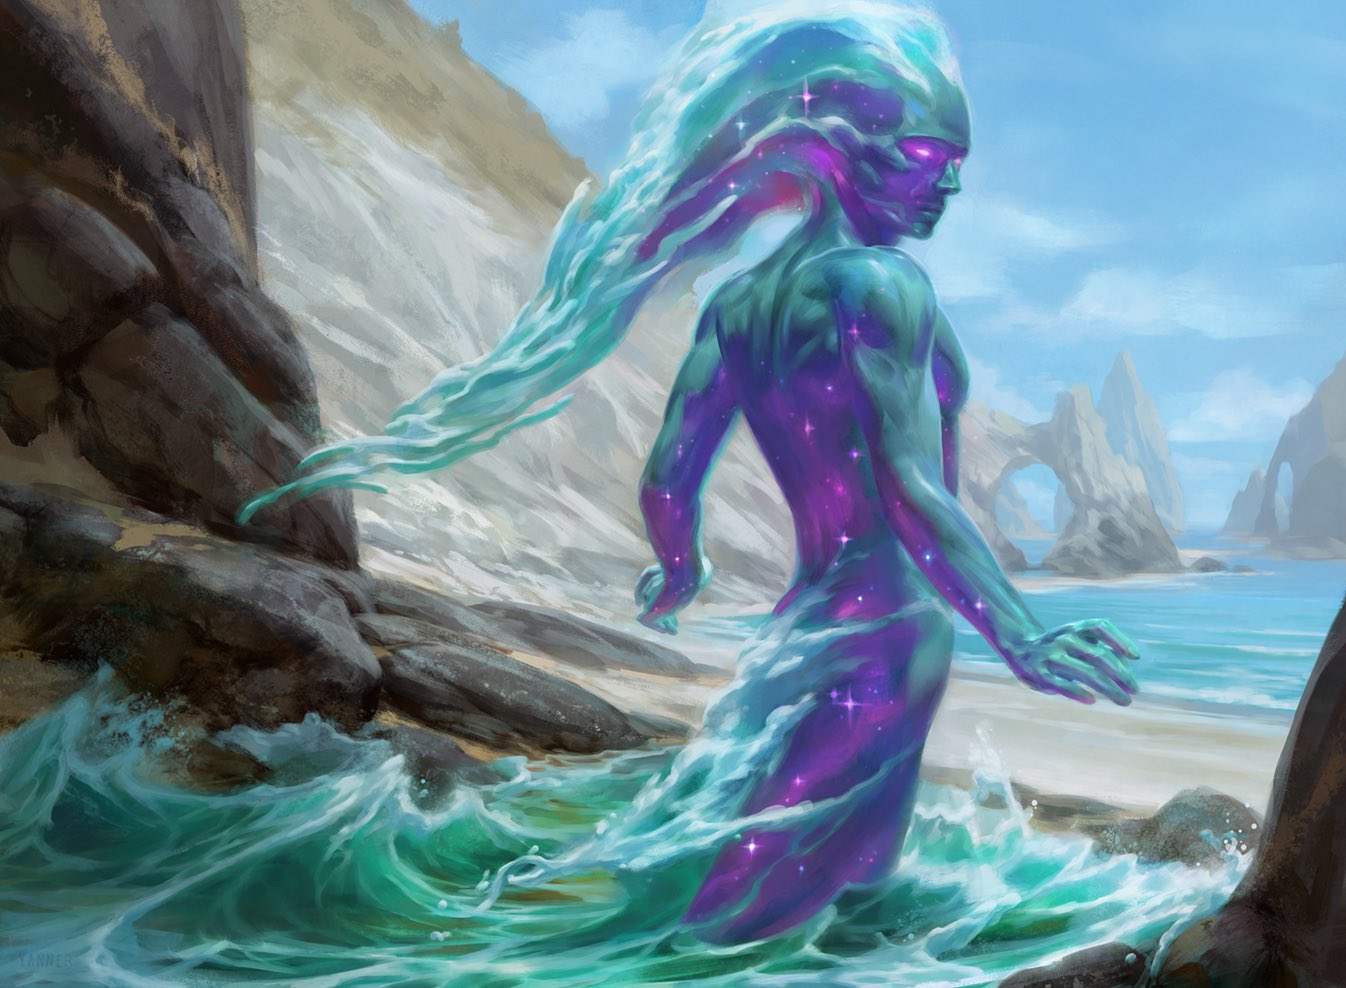 Tasha's Cauldron of Everything: The Circle Of Stars Druid Subclass Gets Final Revision In Wizards Of The Coast's Newest Rules Expansion